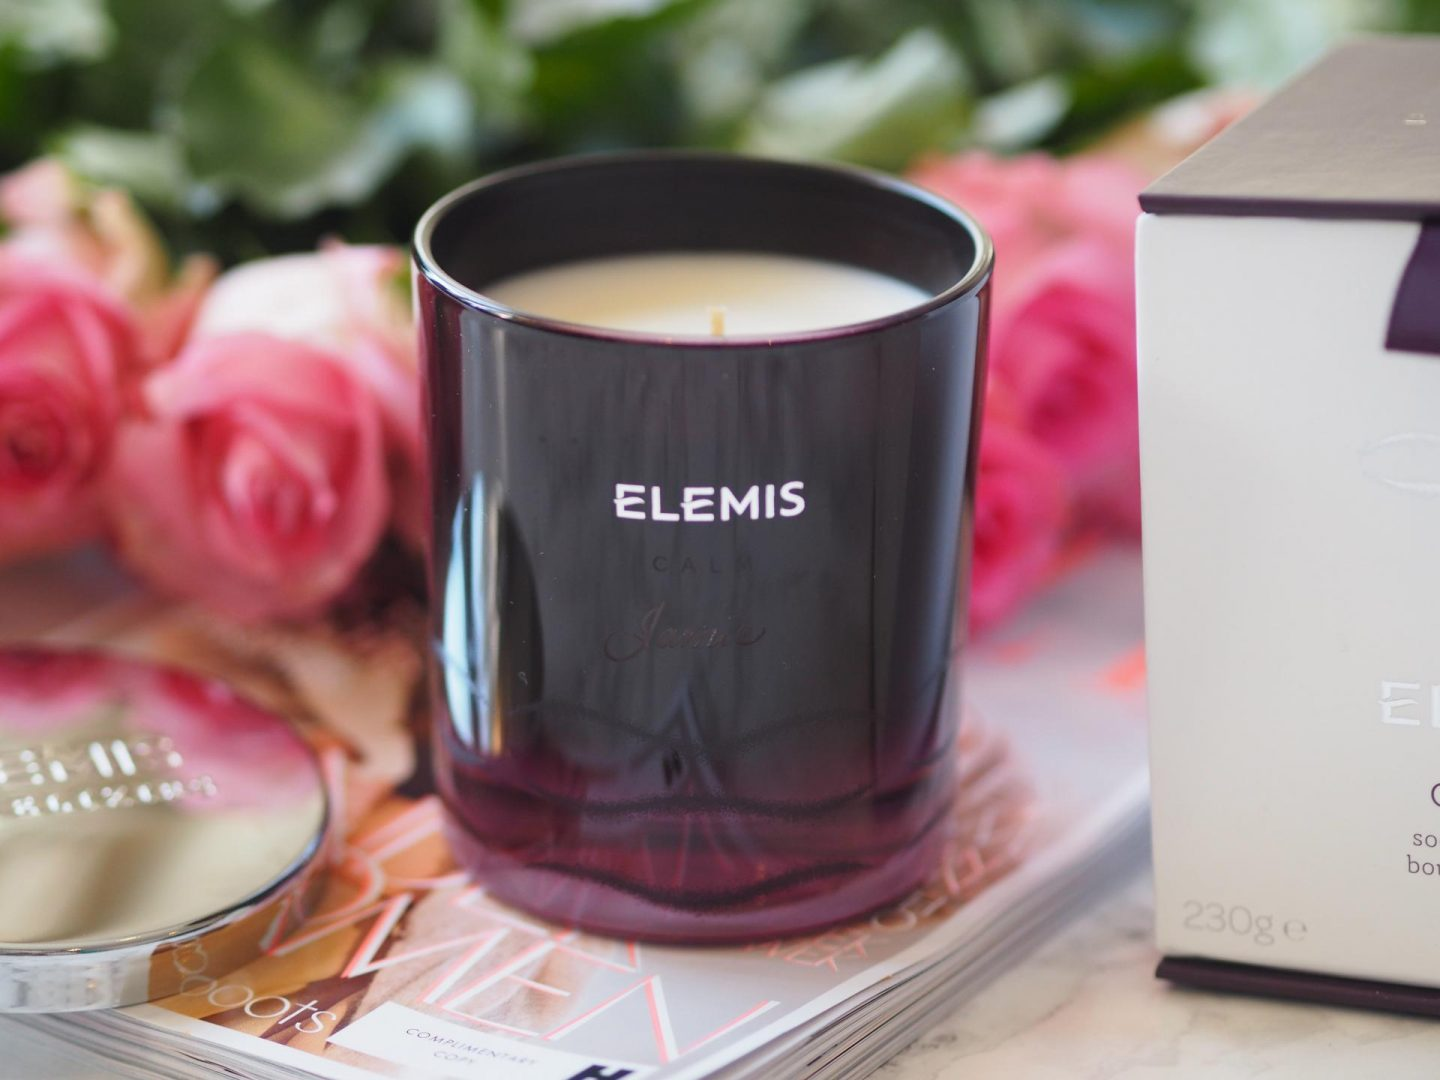 Elemis Calm Soothing Candle